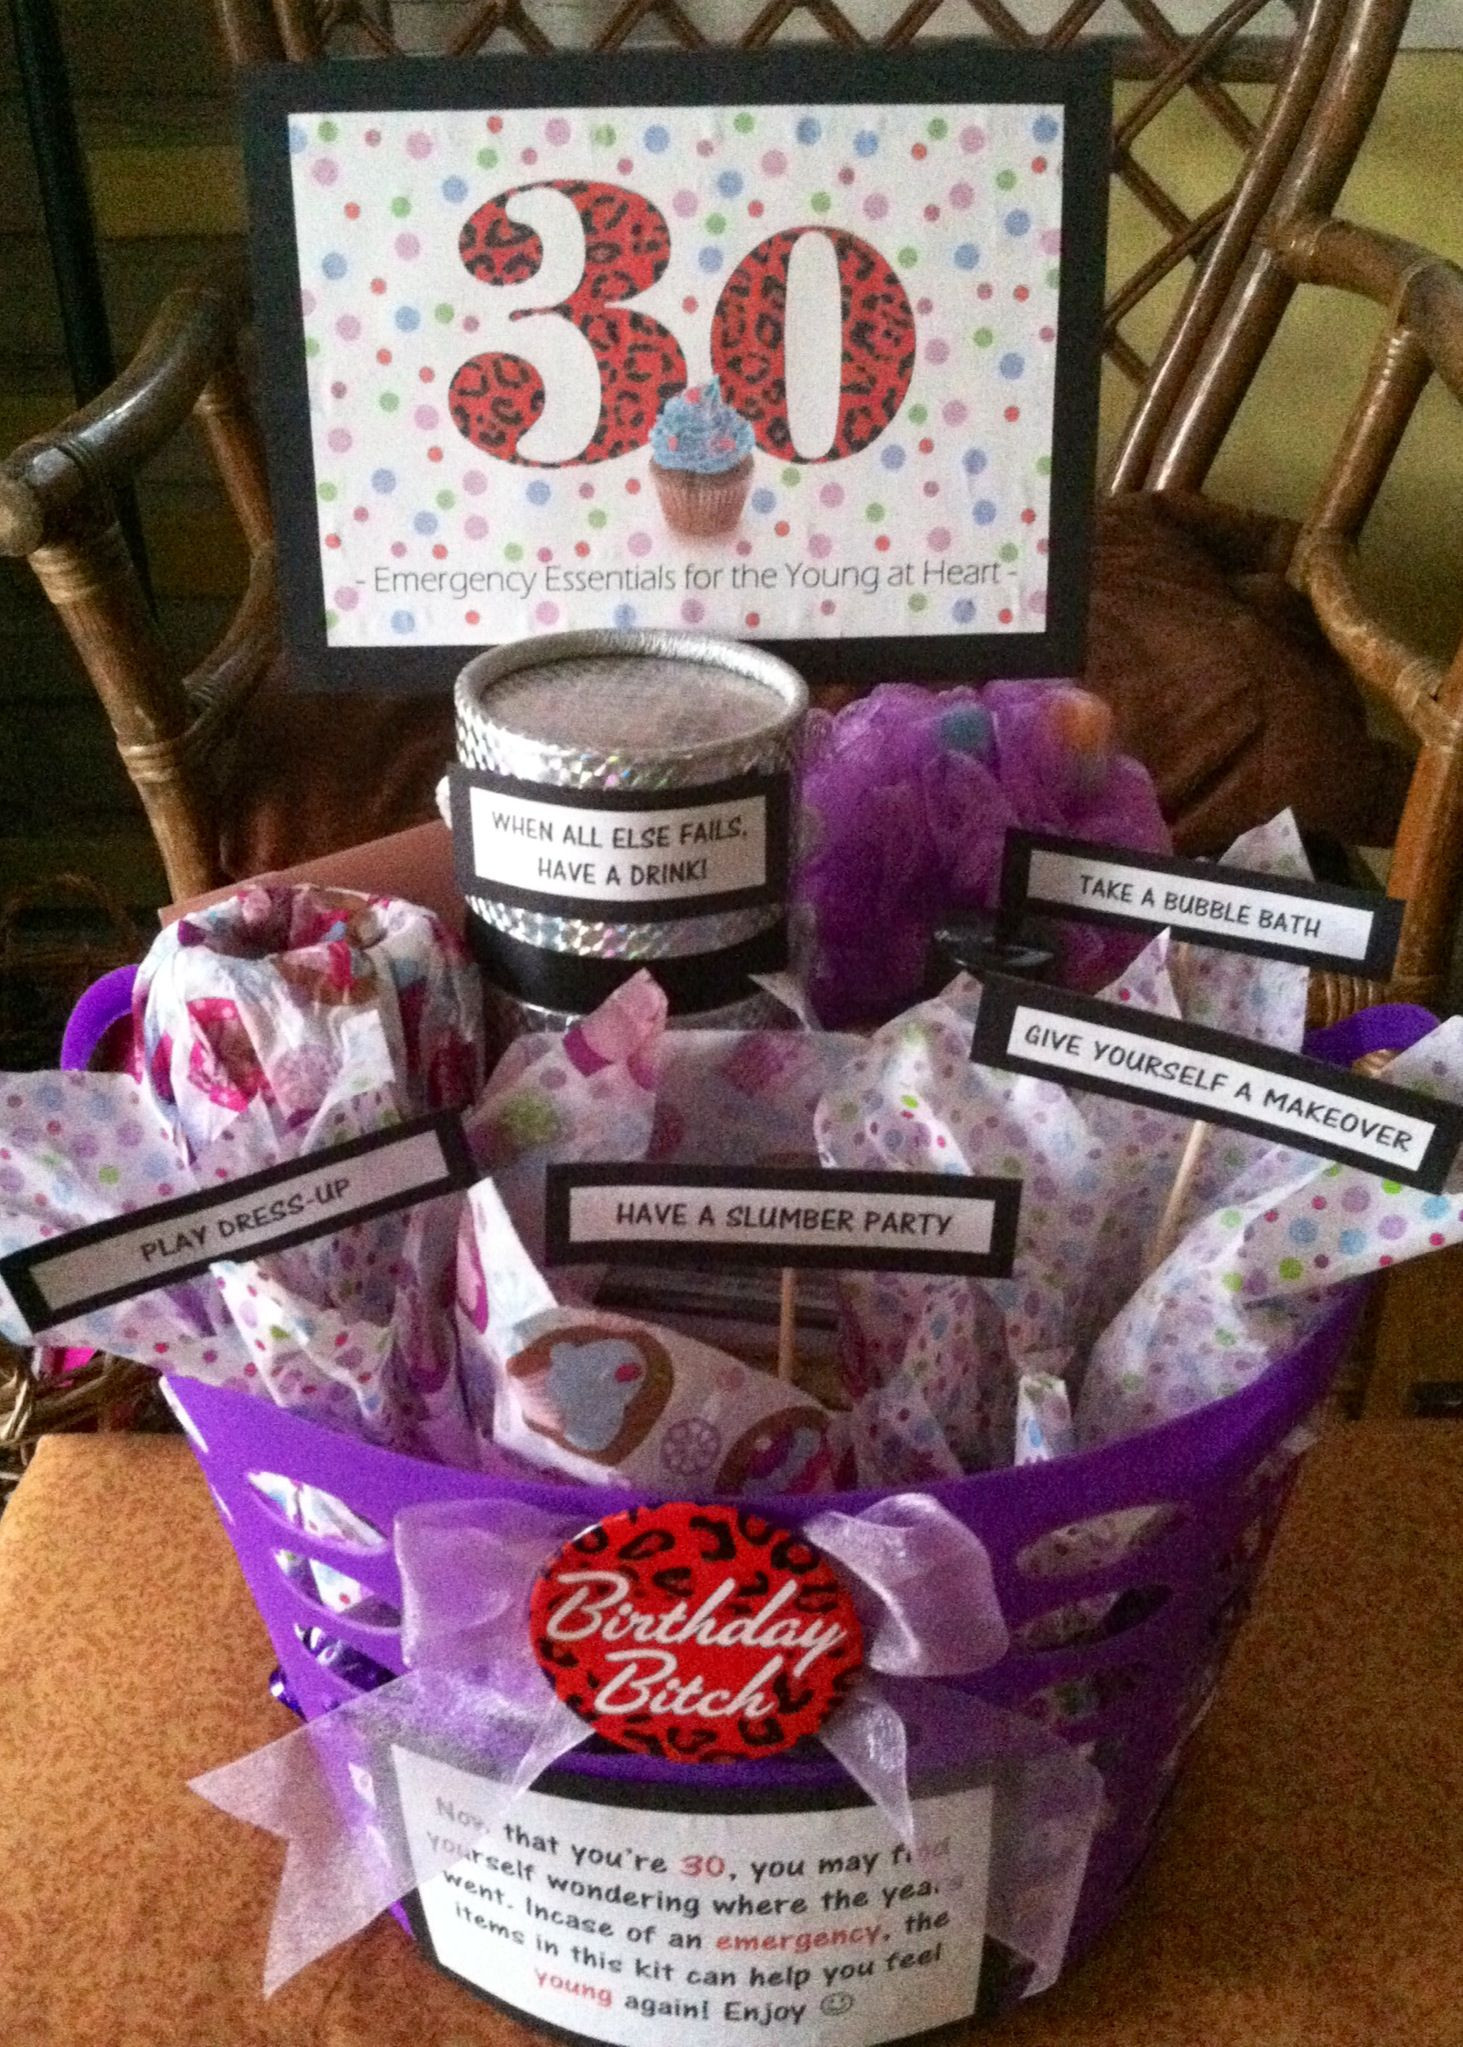 Gift Ideas For 30Th Birthday Woman  30th Birthday Gift Basket 5 ts in 1 Emergency